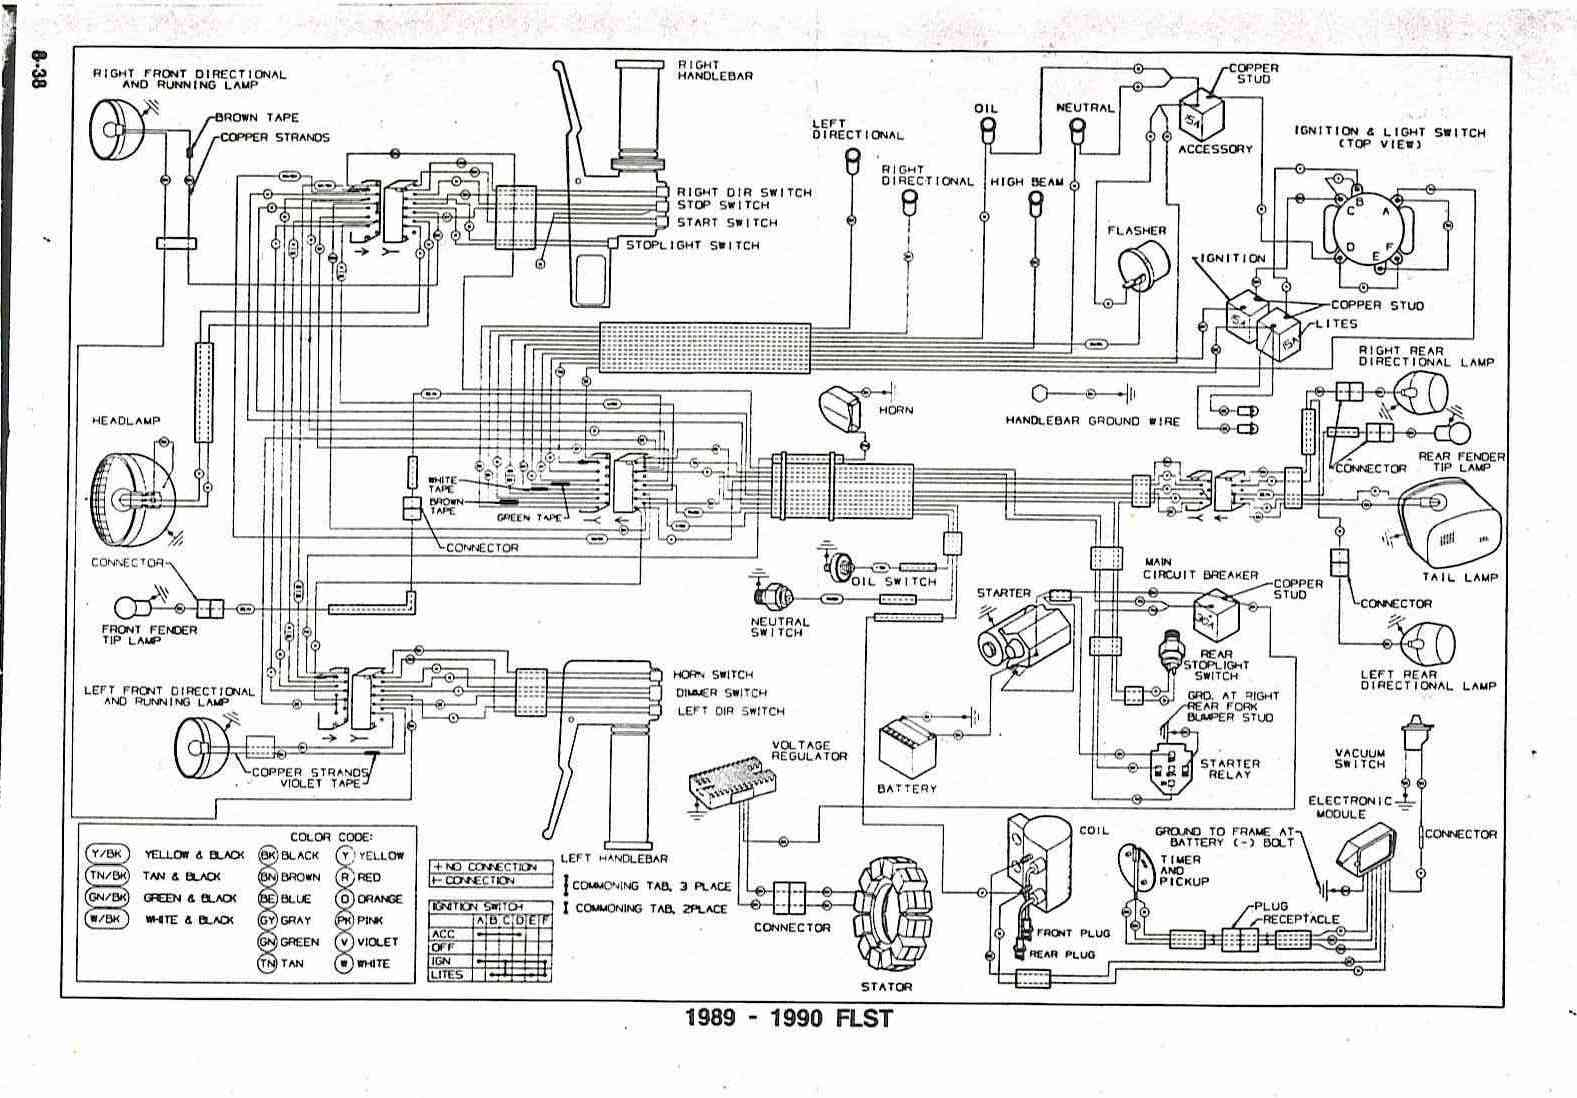 951HD_wireing_schematic2 harley wiring diagrams harley davidson golf cart schematics harley davidson wiring diagram at aneh.co